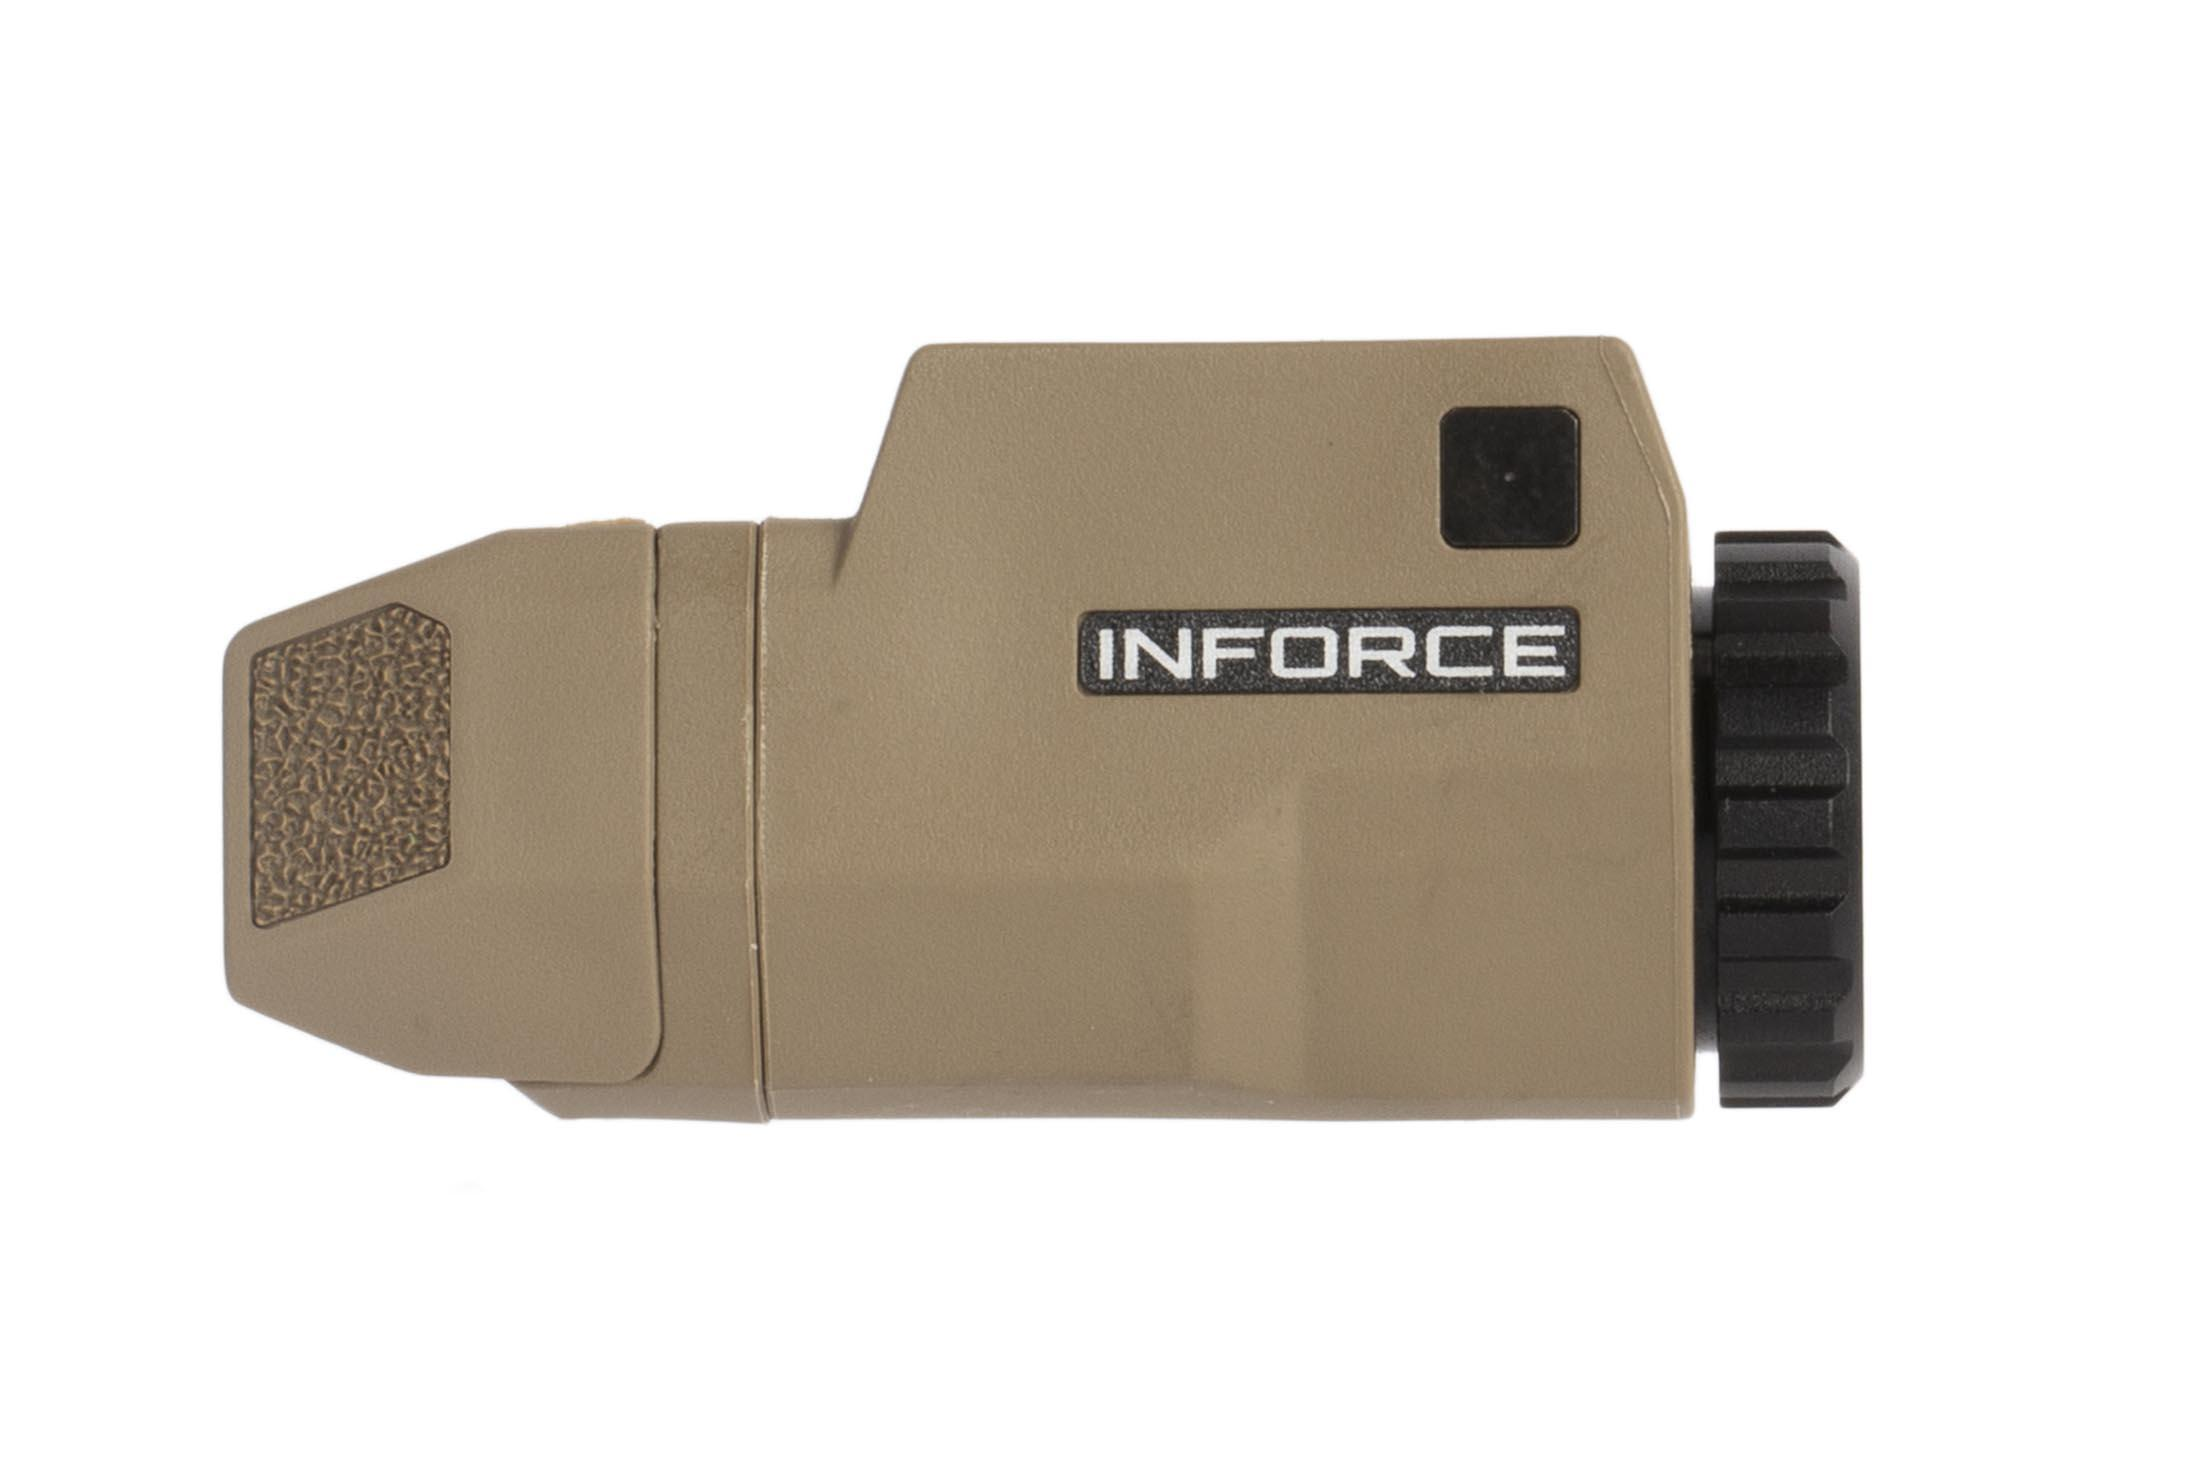 Inforce APLc pistol light is a lightweight and compact option for your favorite Glock handgun with an attractice FDE body